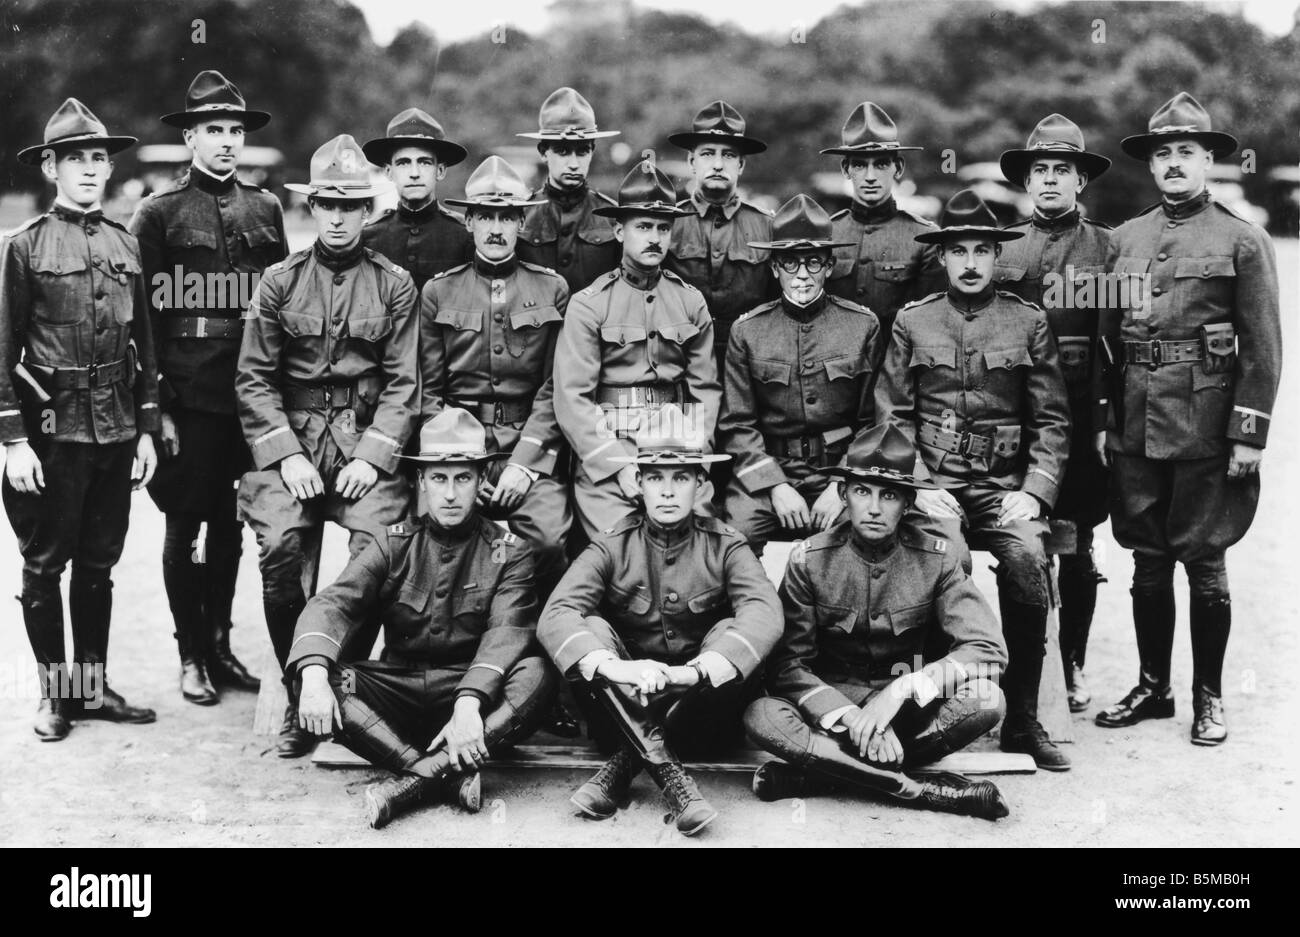 2 M70 U1 1918 5 E USA Infantry officers Photo 1918 Military countries USA Group photo Officers of the Morristown - Stock Image